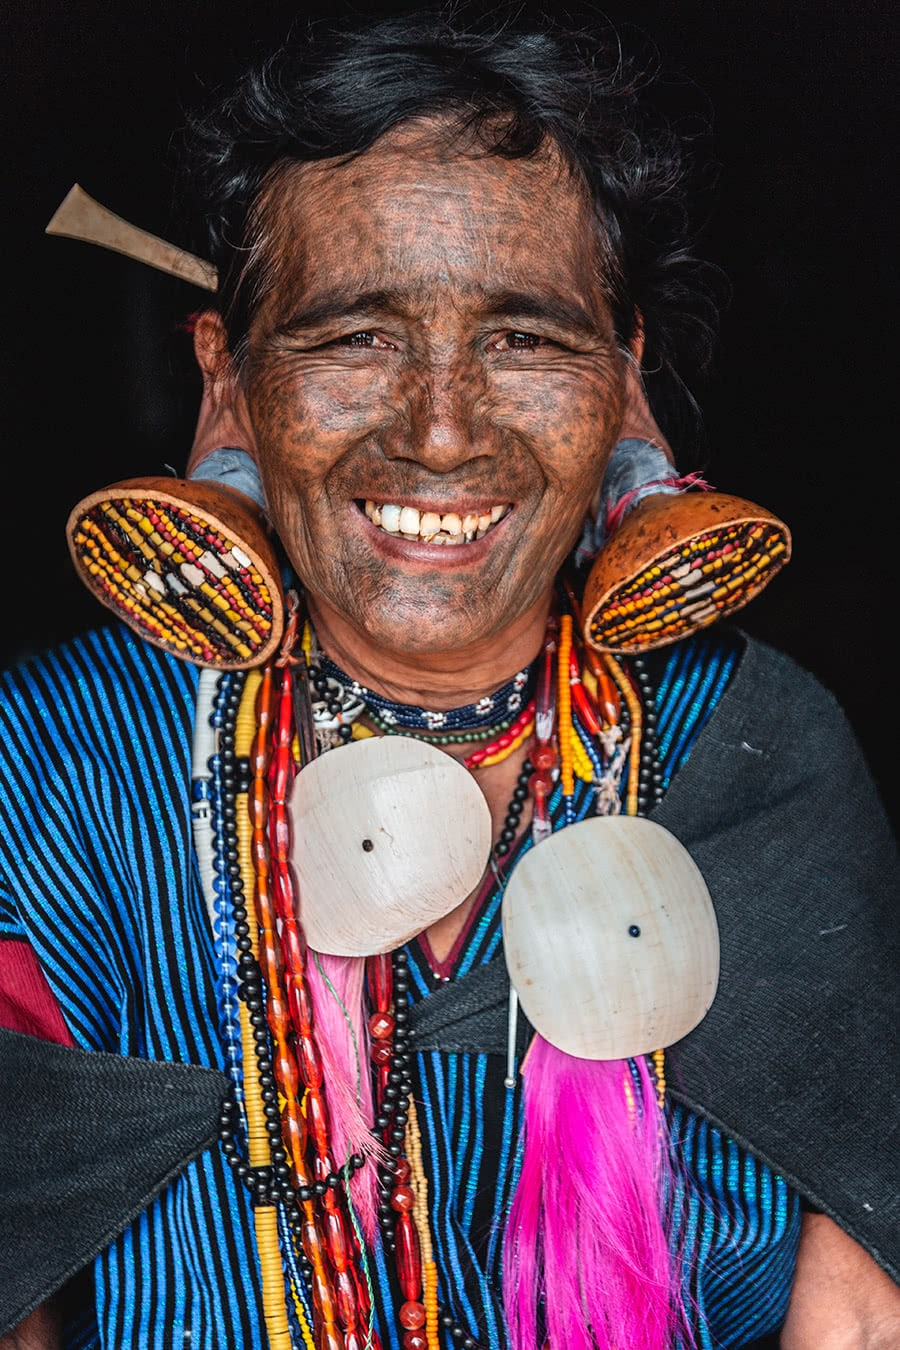 A M'kuum woman from Mindat, Chin State, with distinctive facial tattoos and clothing.